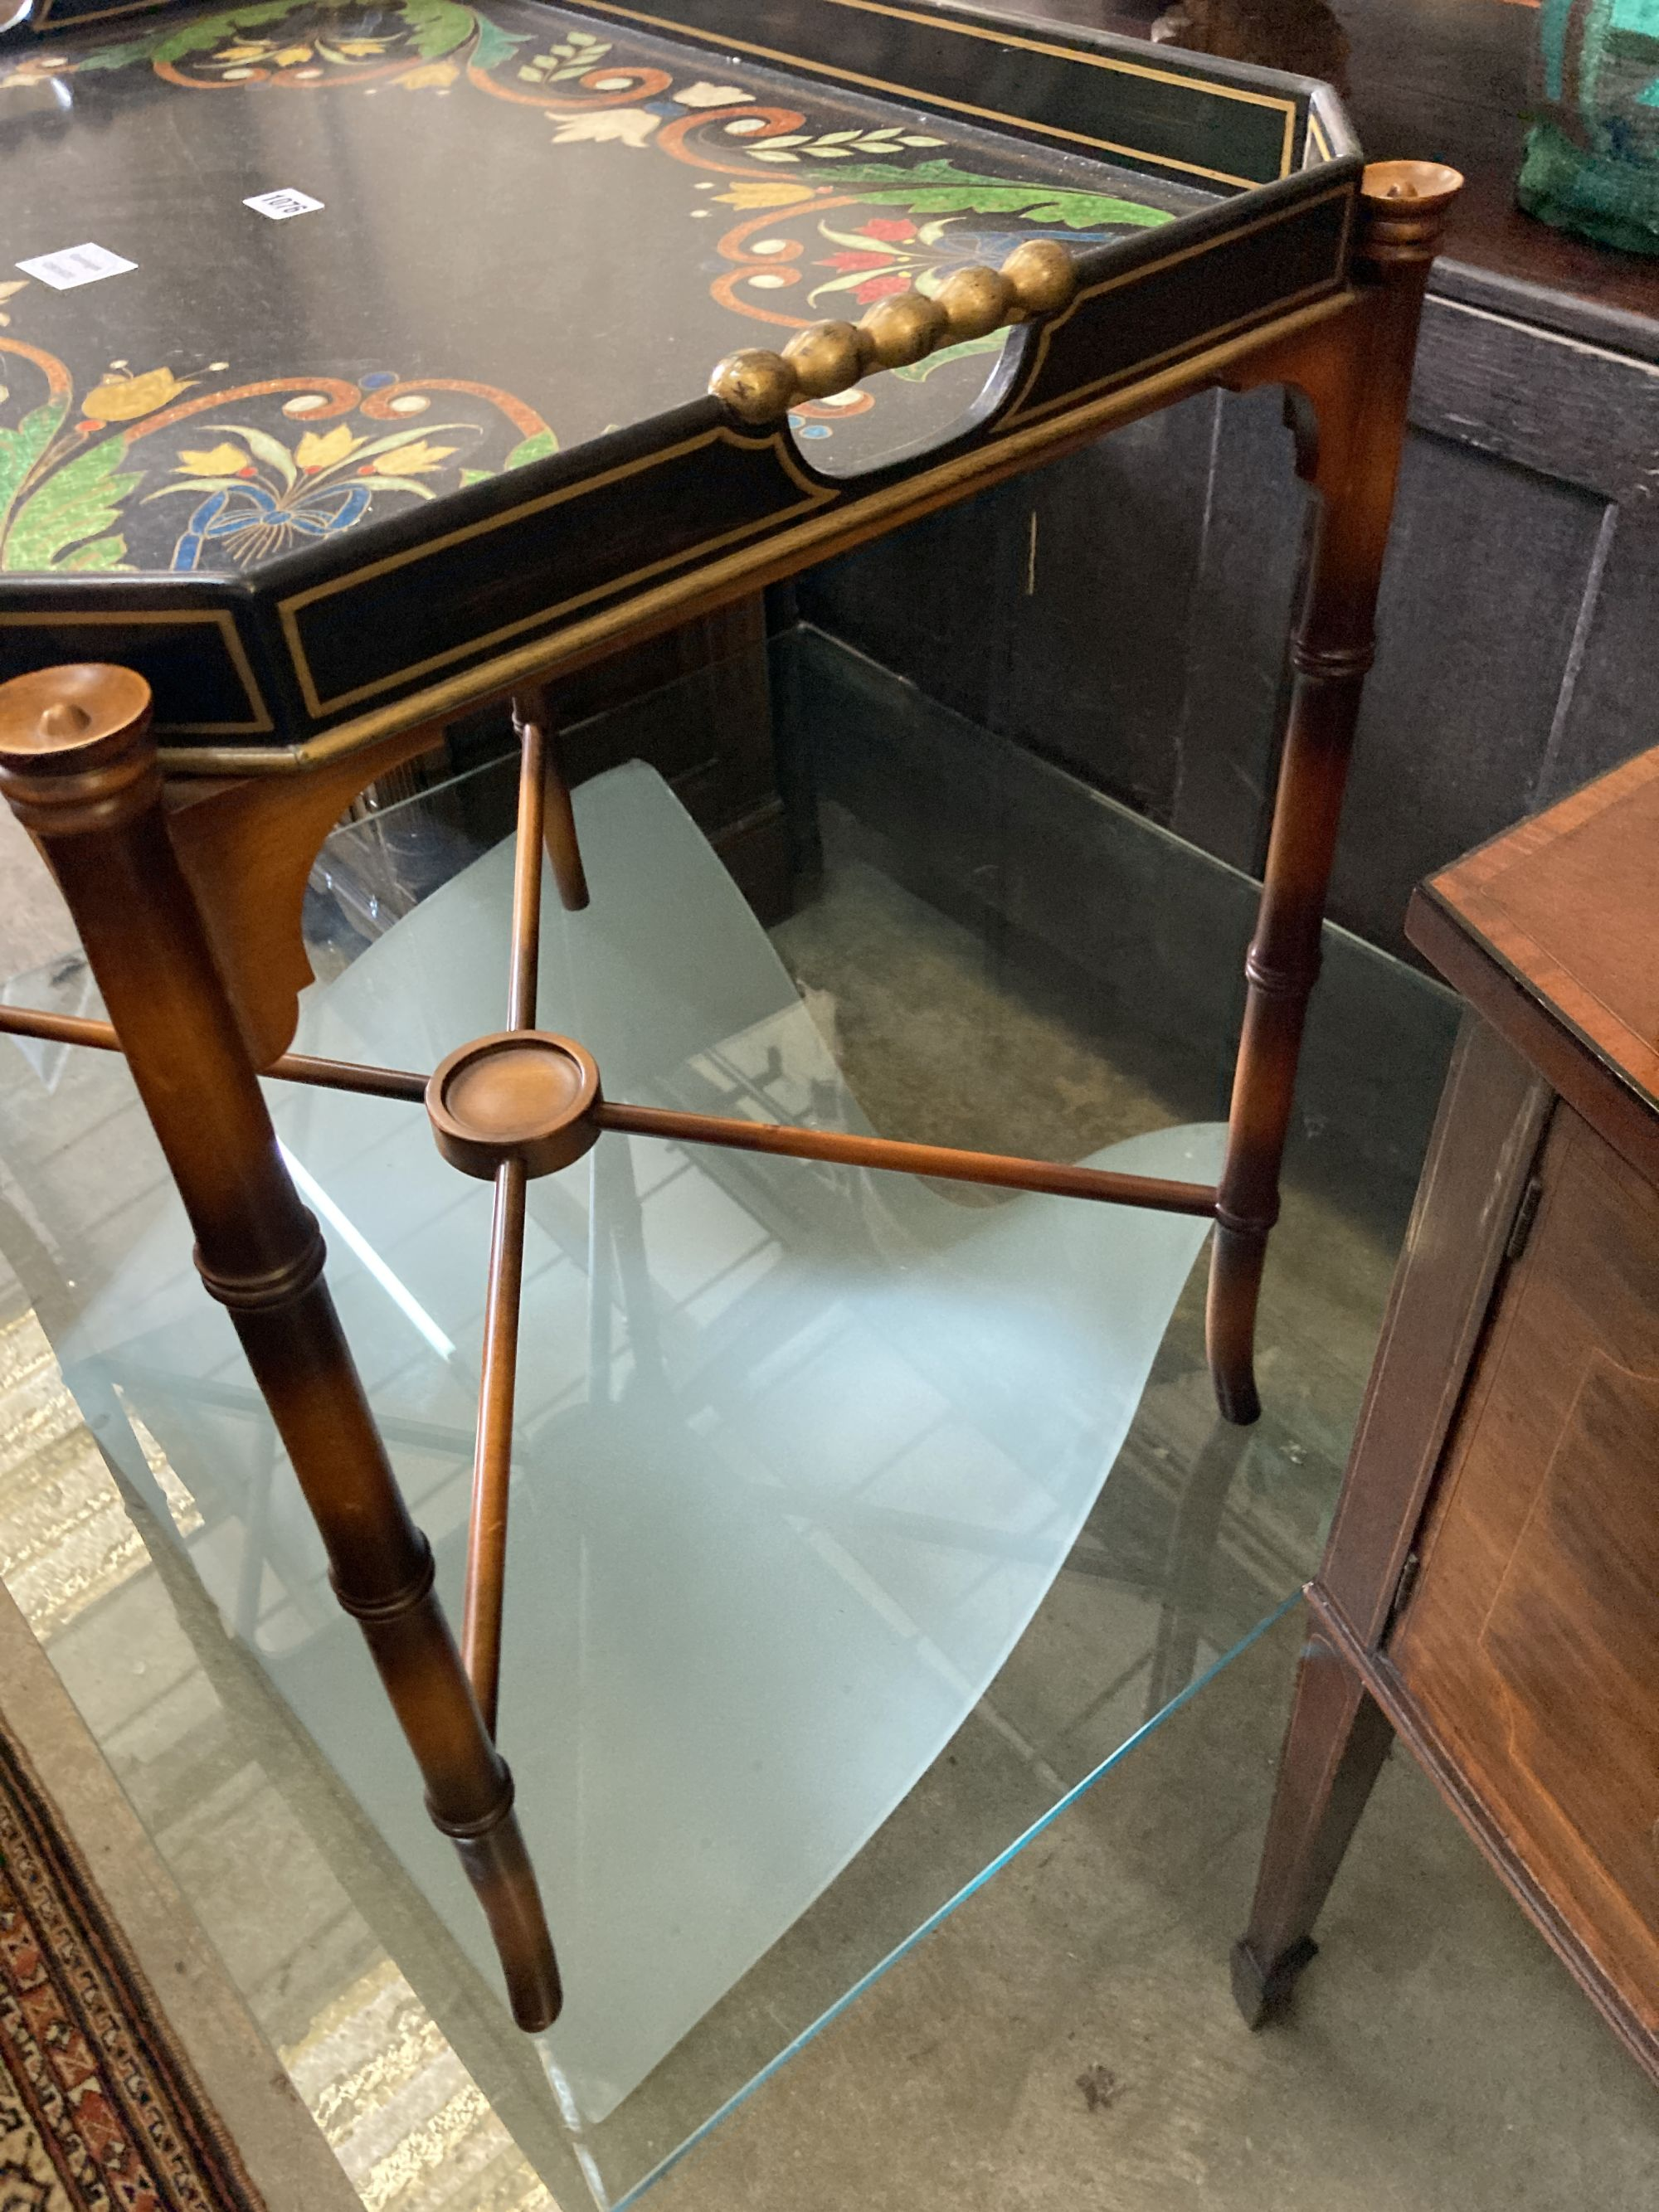 A Julian Chichester painted tray top occasional table, width 74cm, depth 54cm, height 74cm - Image 3 of 4